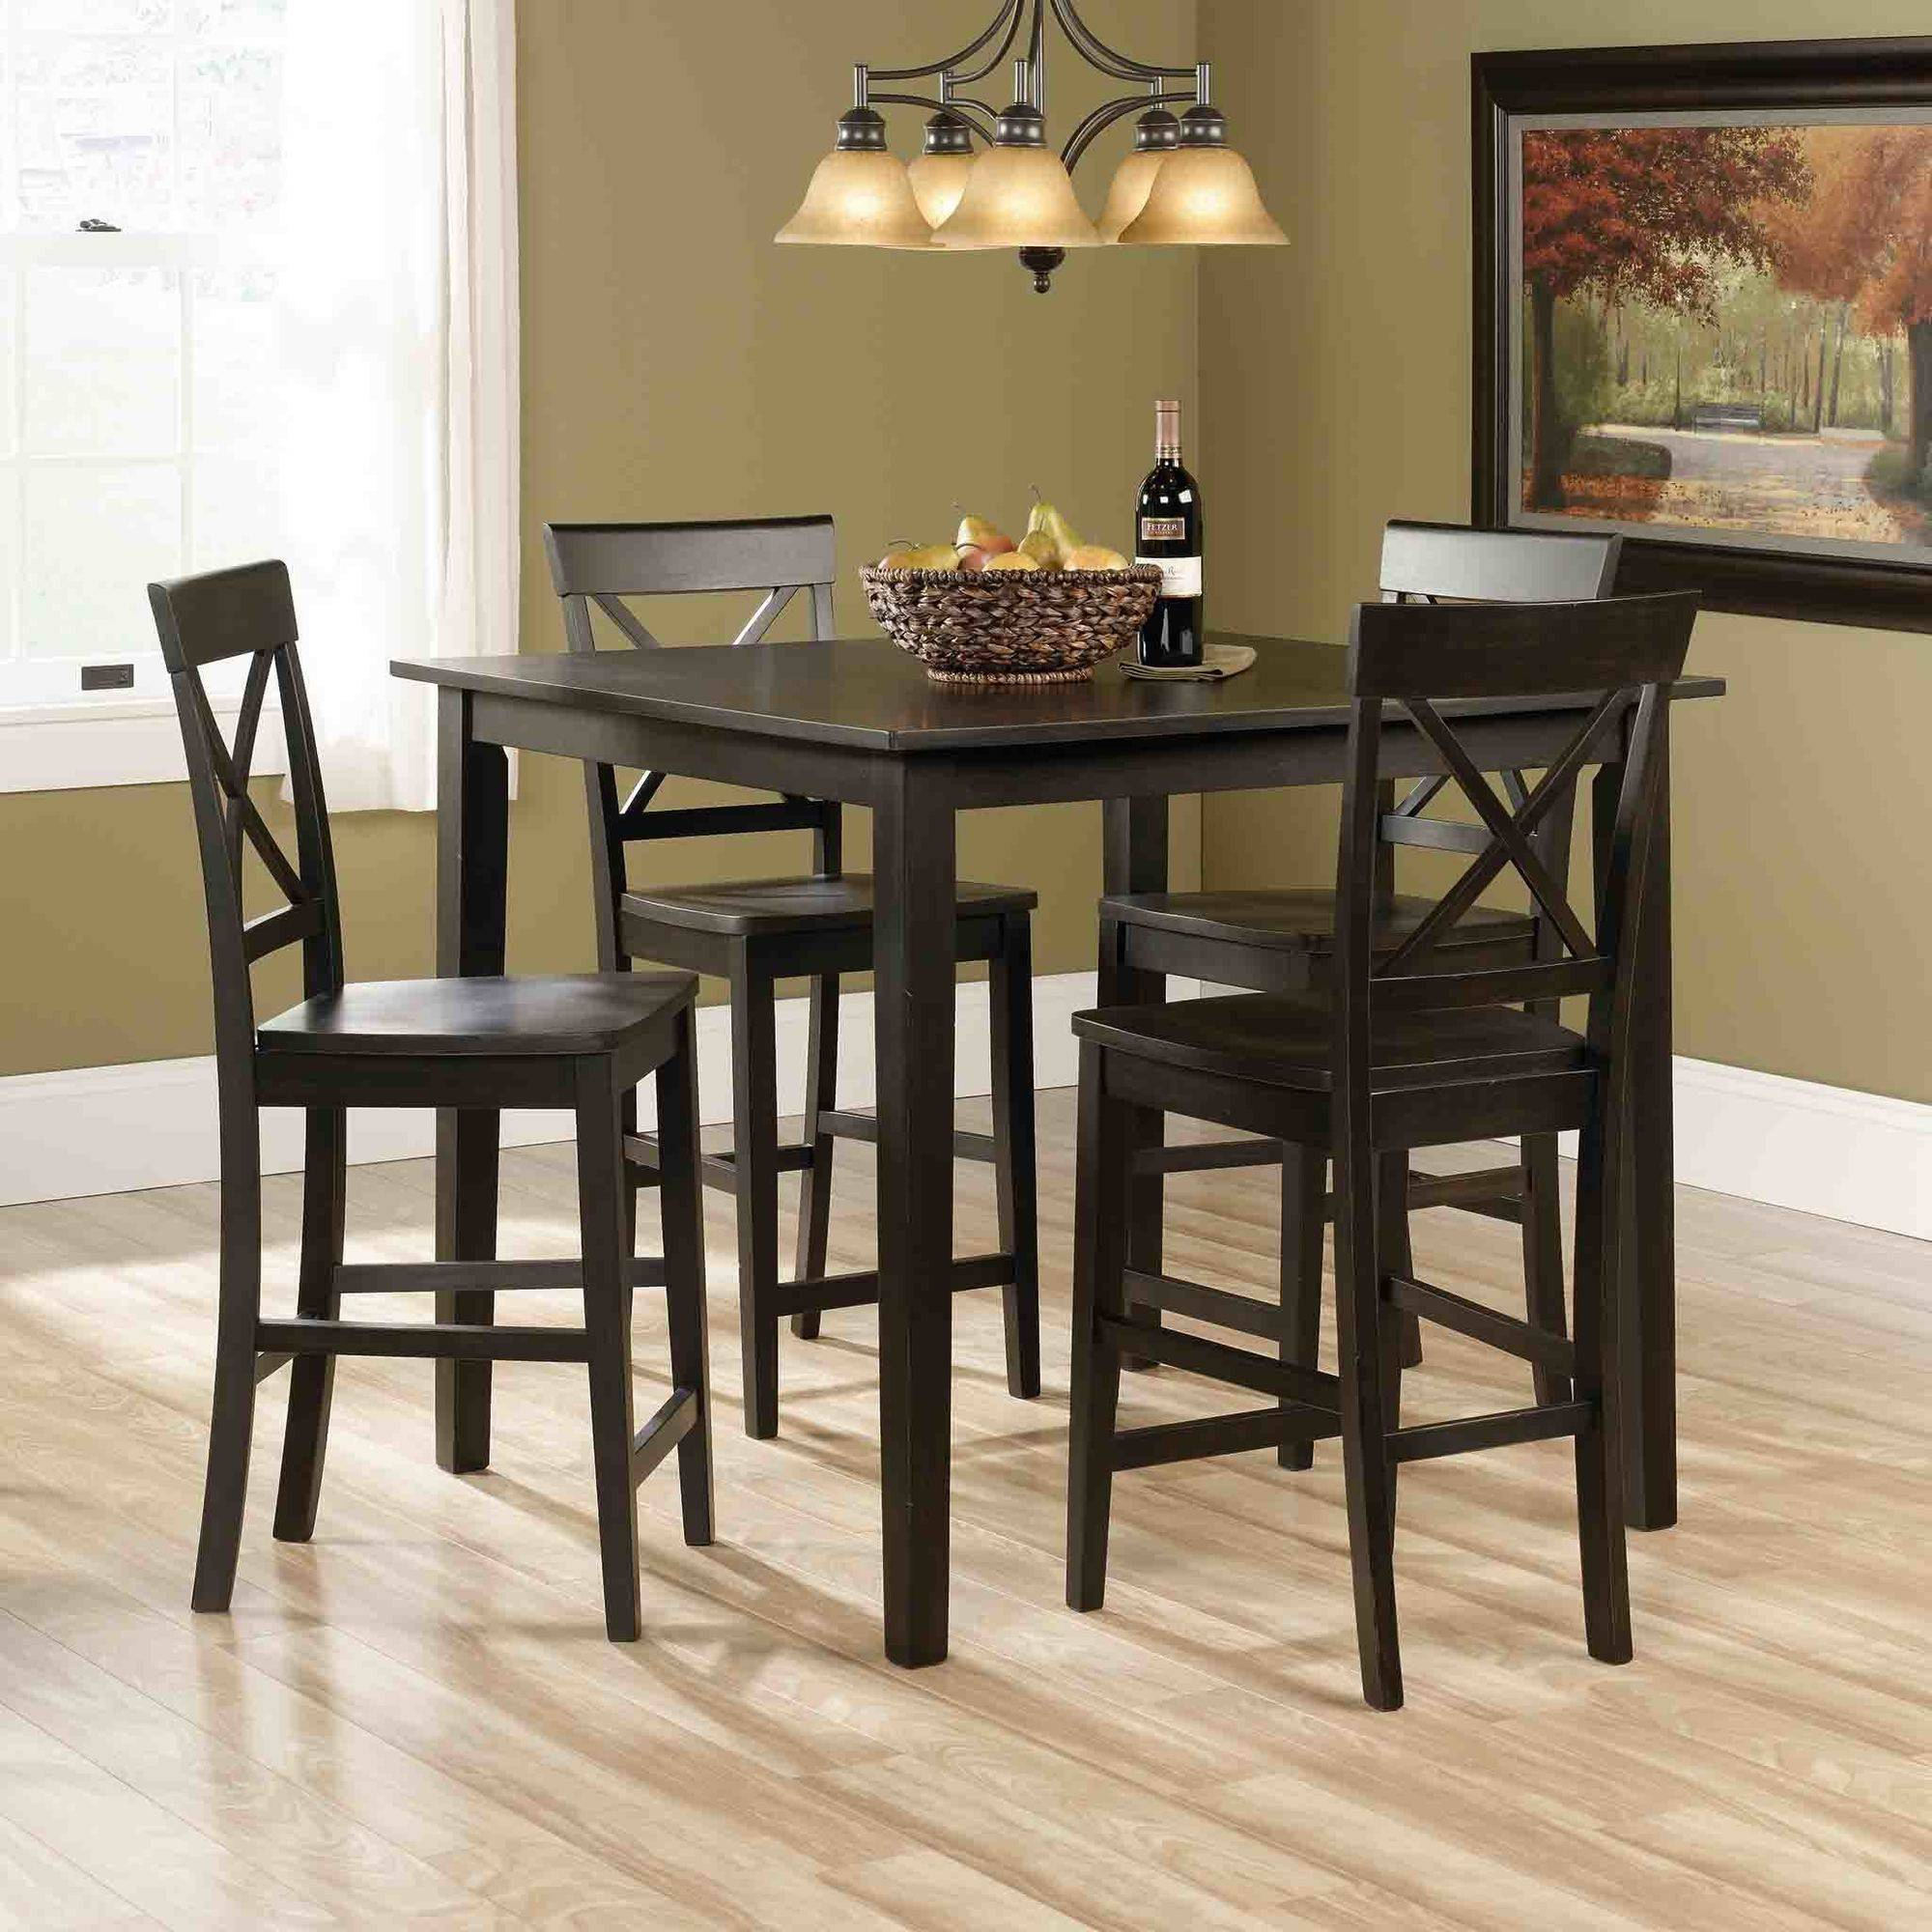 Sauder Edge Water Counter Height 5 Piece Dining Set, Estate Black